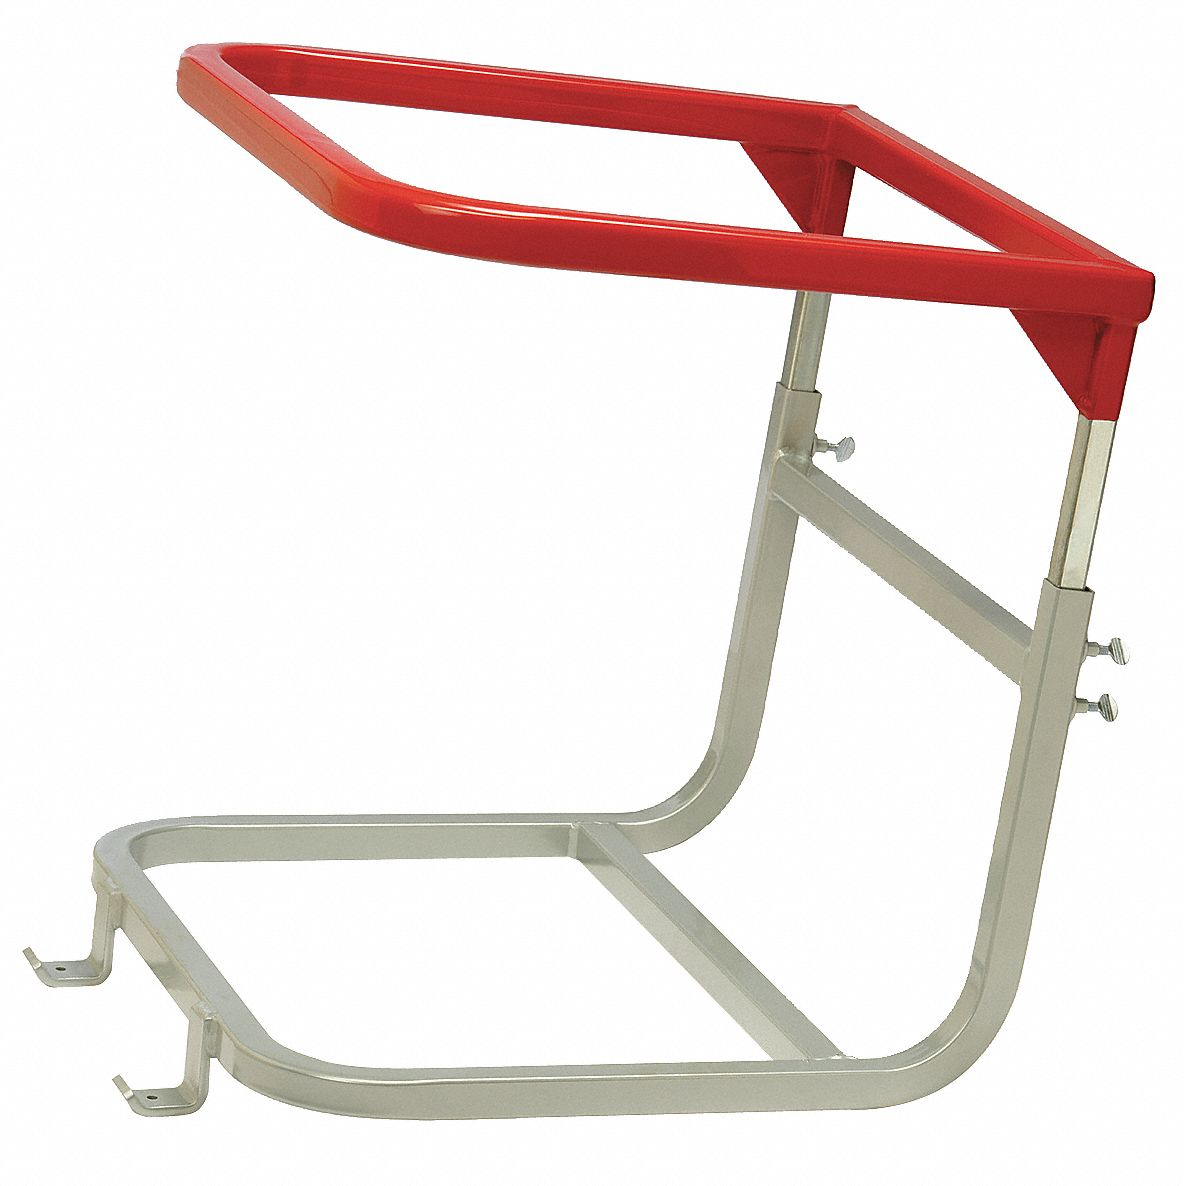 Table Lift Attachment,  250 lb Load Capacity,  17 in x 20 in x 19 in